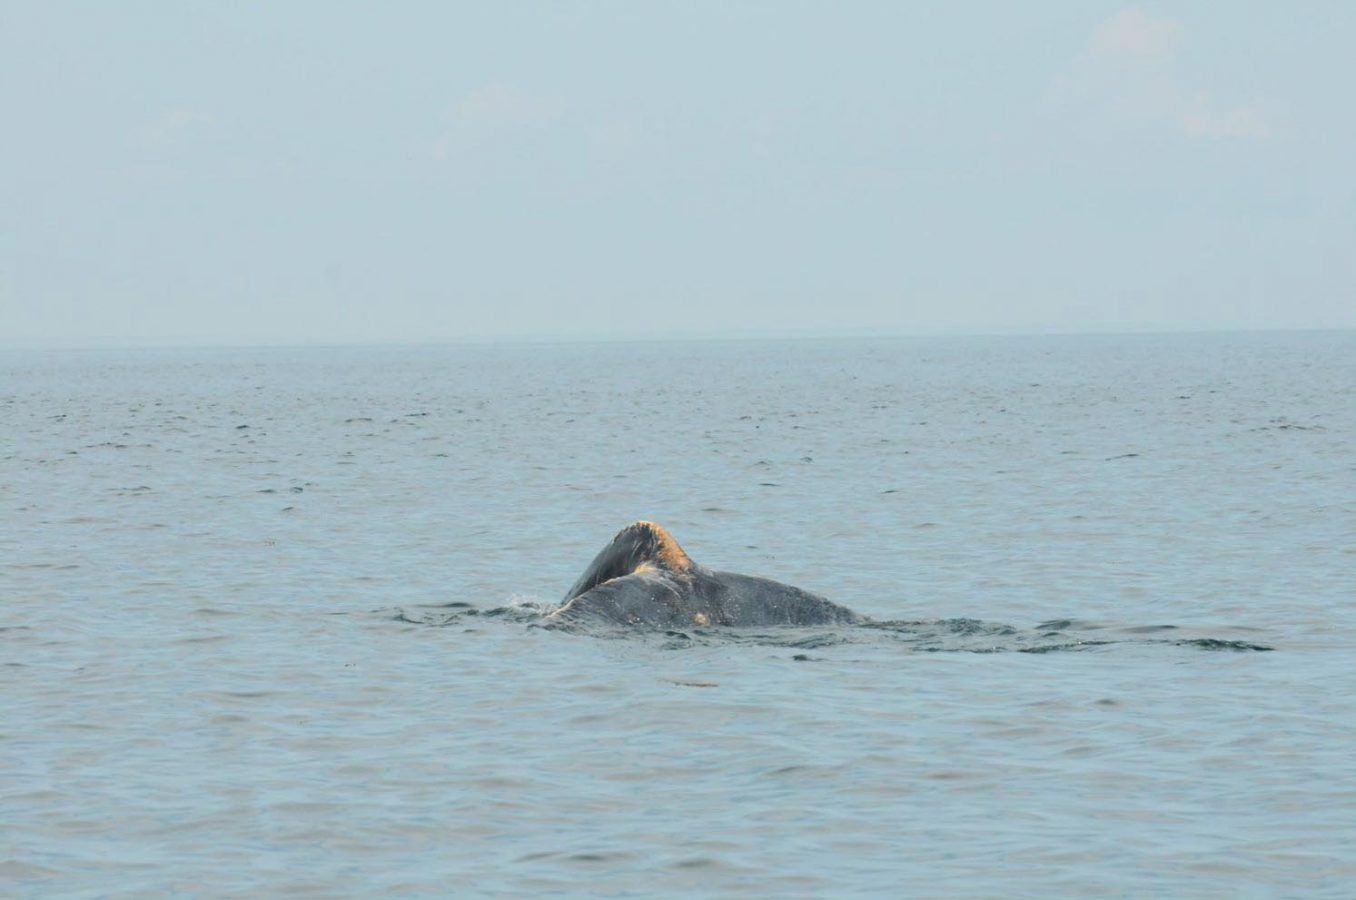 injured whale fluke.